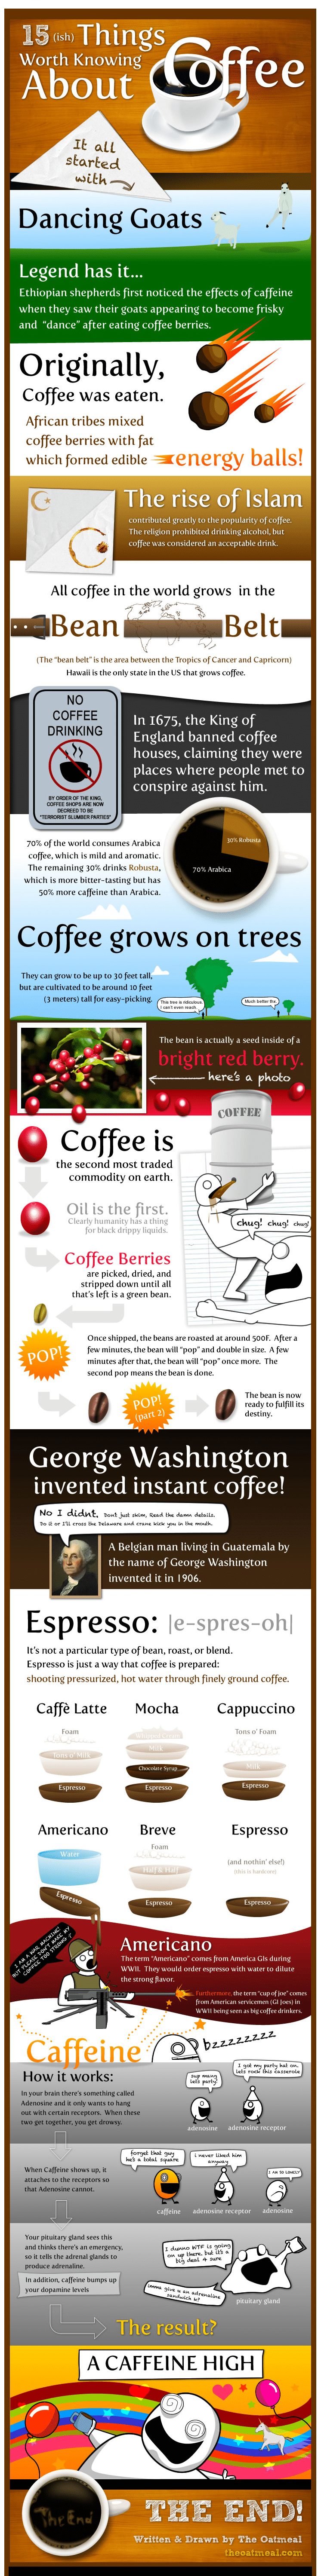 Coffee-Infographic-The-Oatmeal-HD.png